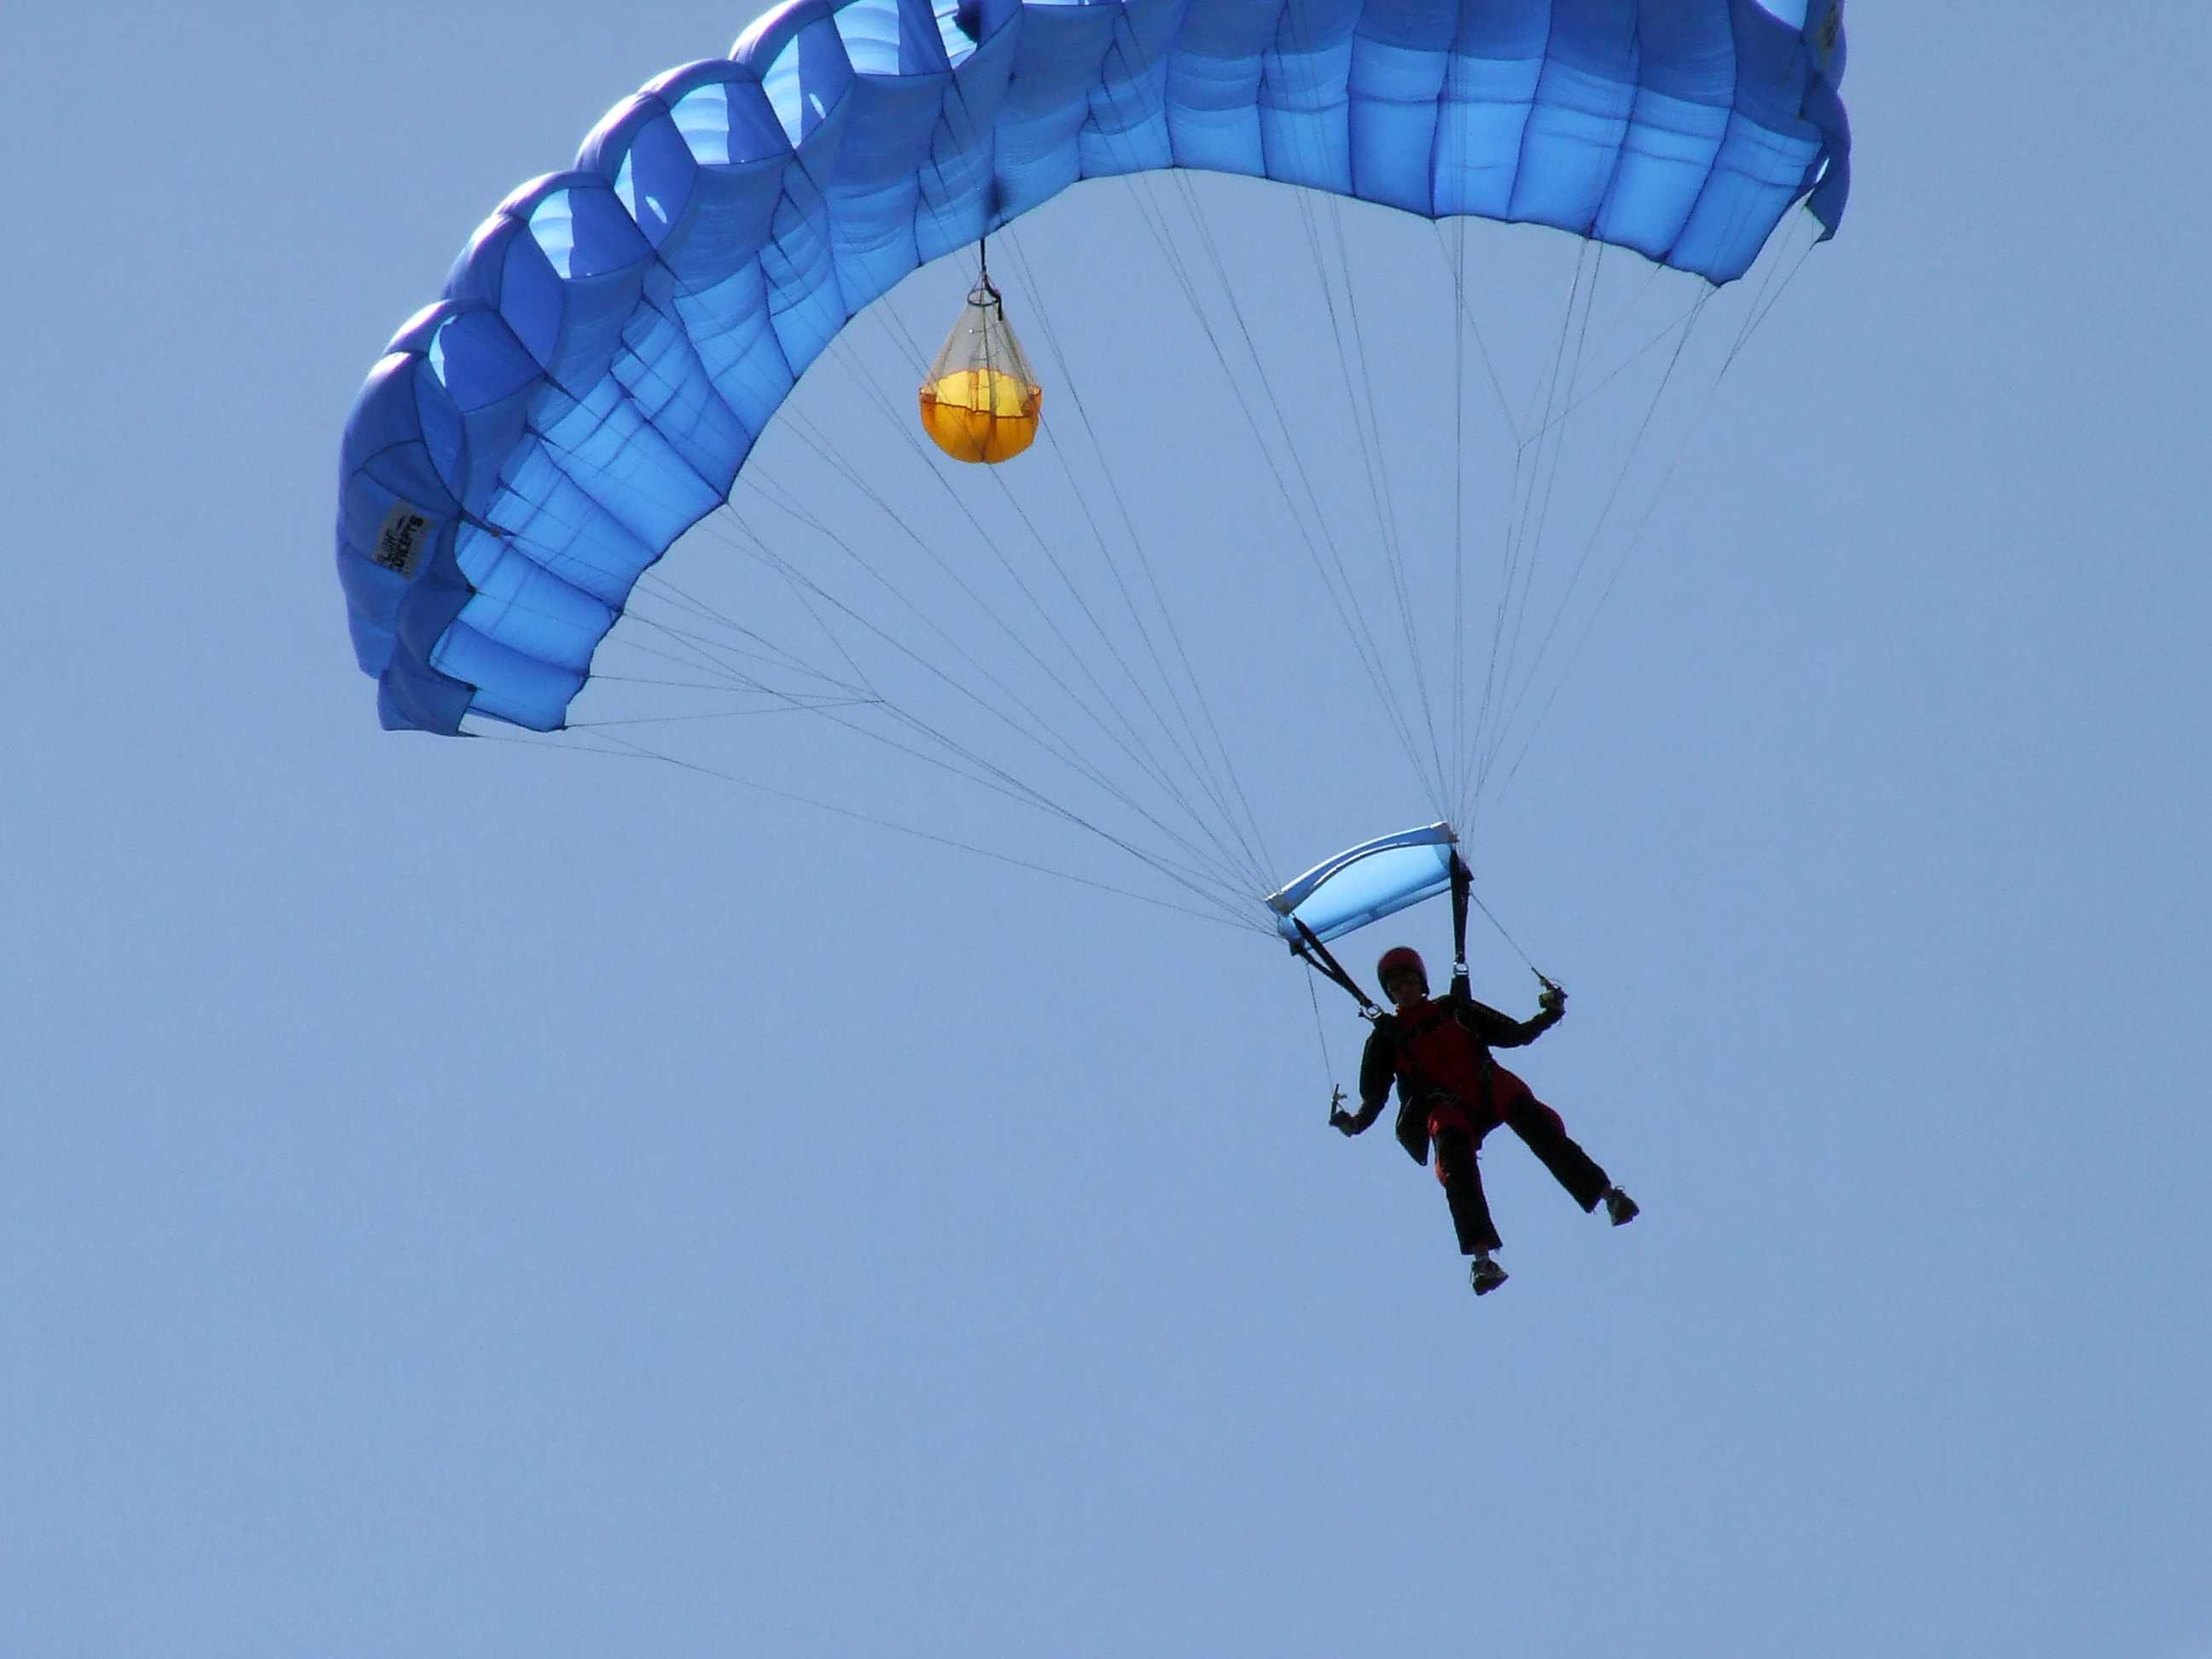 YellowAirplane.com: Skydiving, Parachutes, and Positive ...